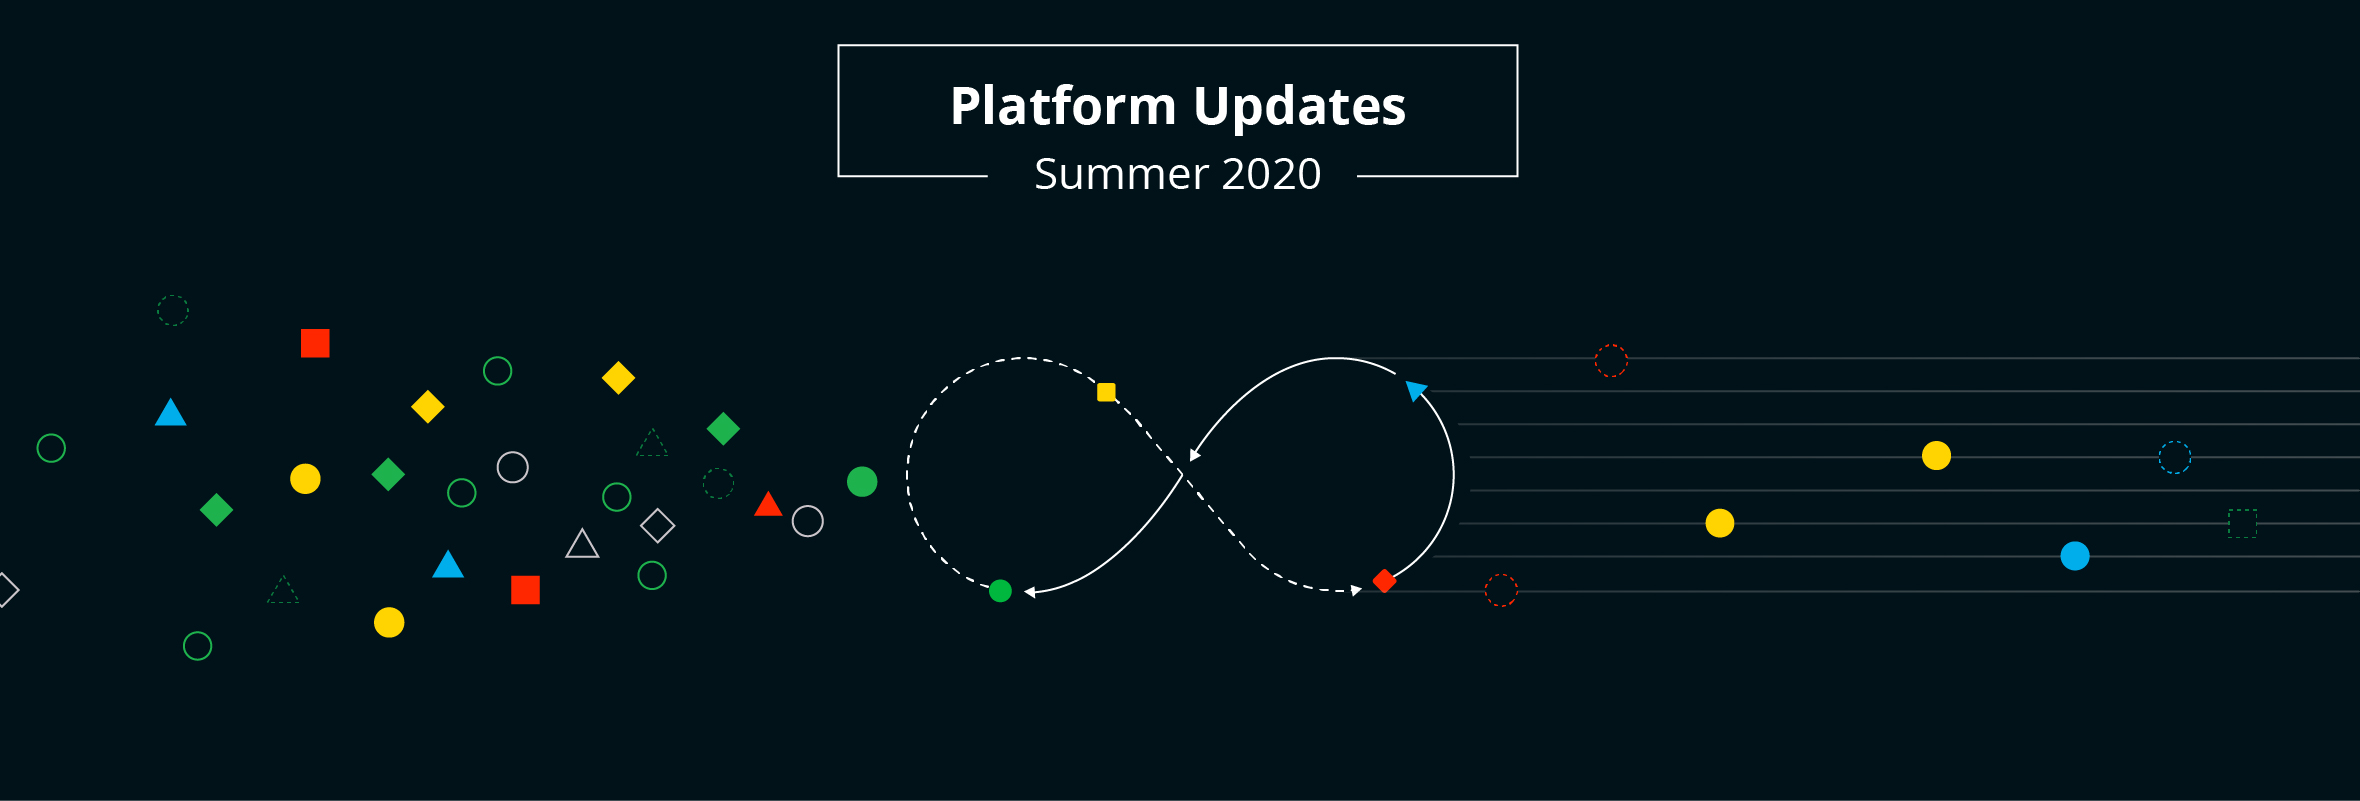 OpsRamp Summer 2020 Release Improves Digital Customer Experiences